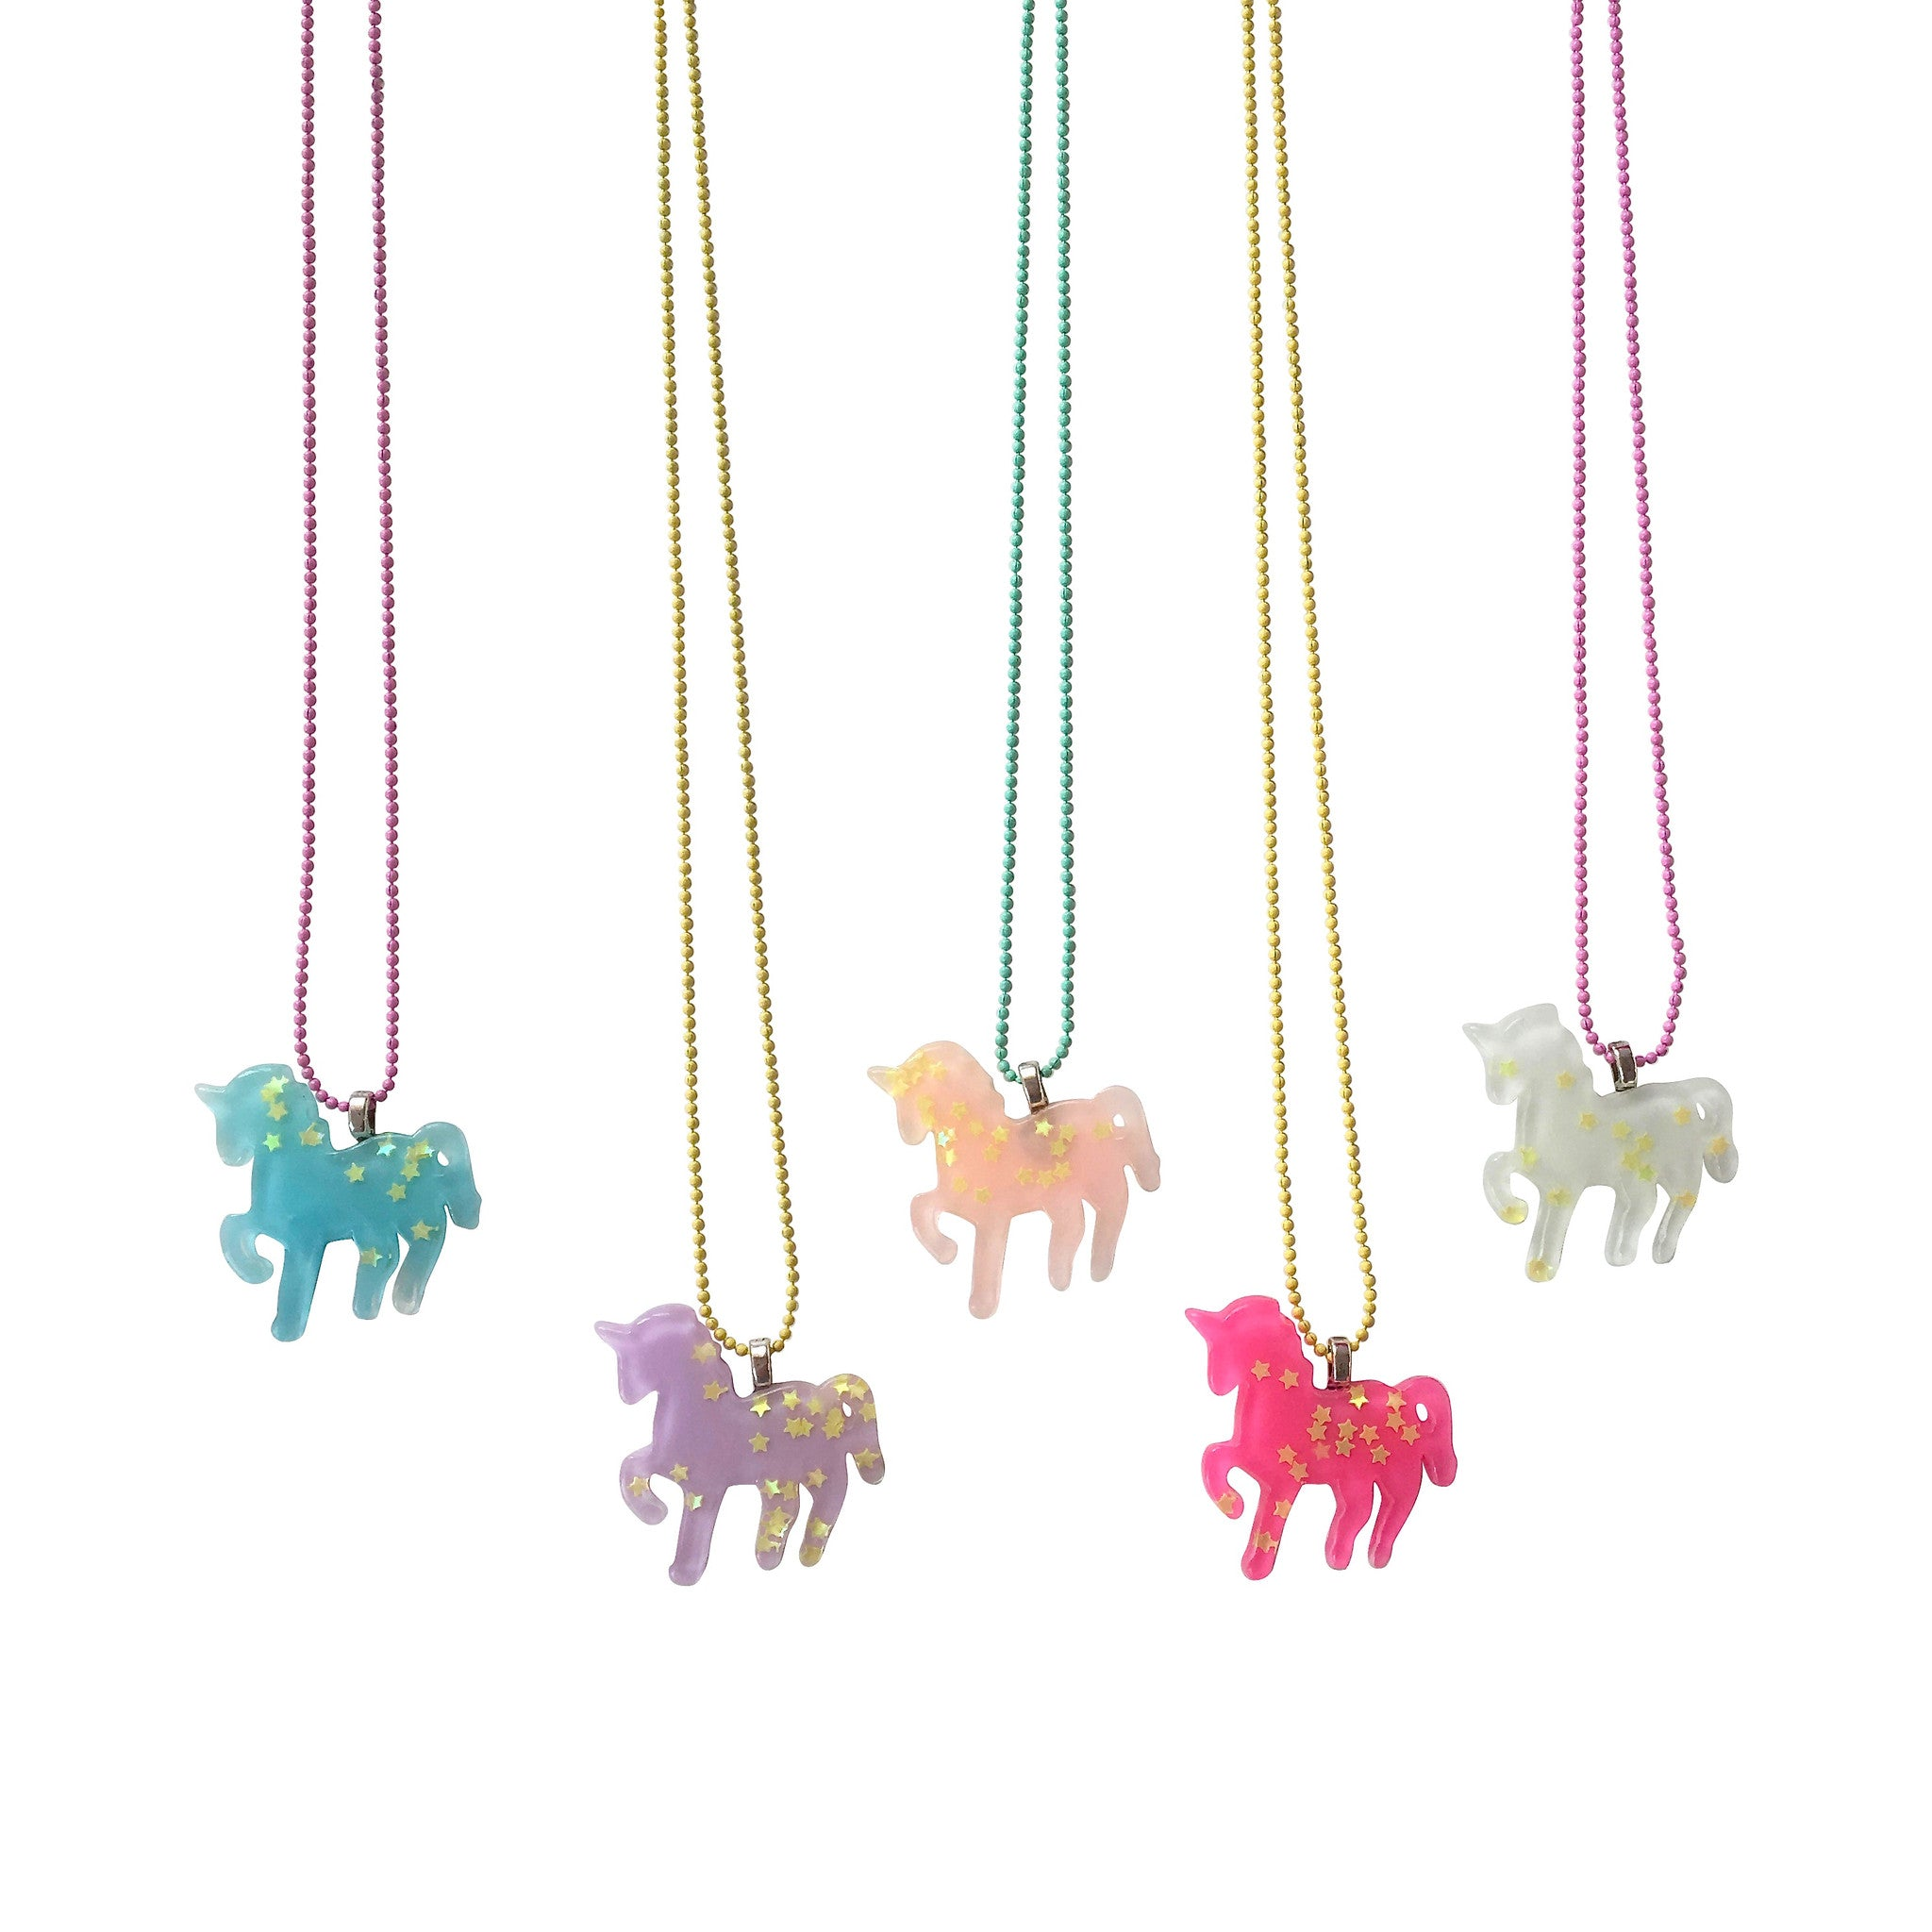 pandora authorized outlet unicorn necklace